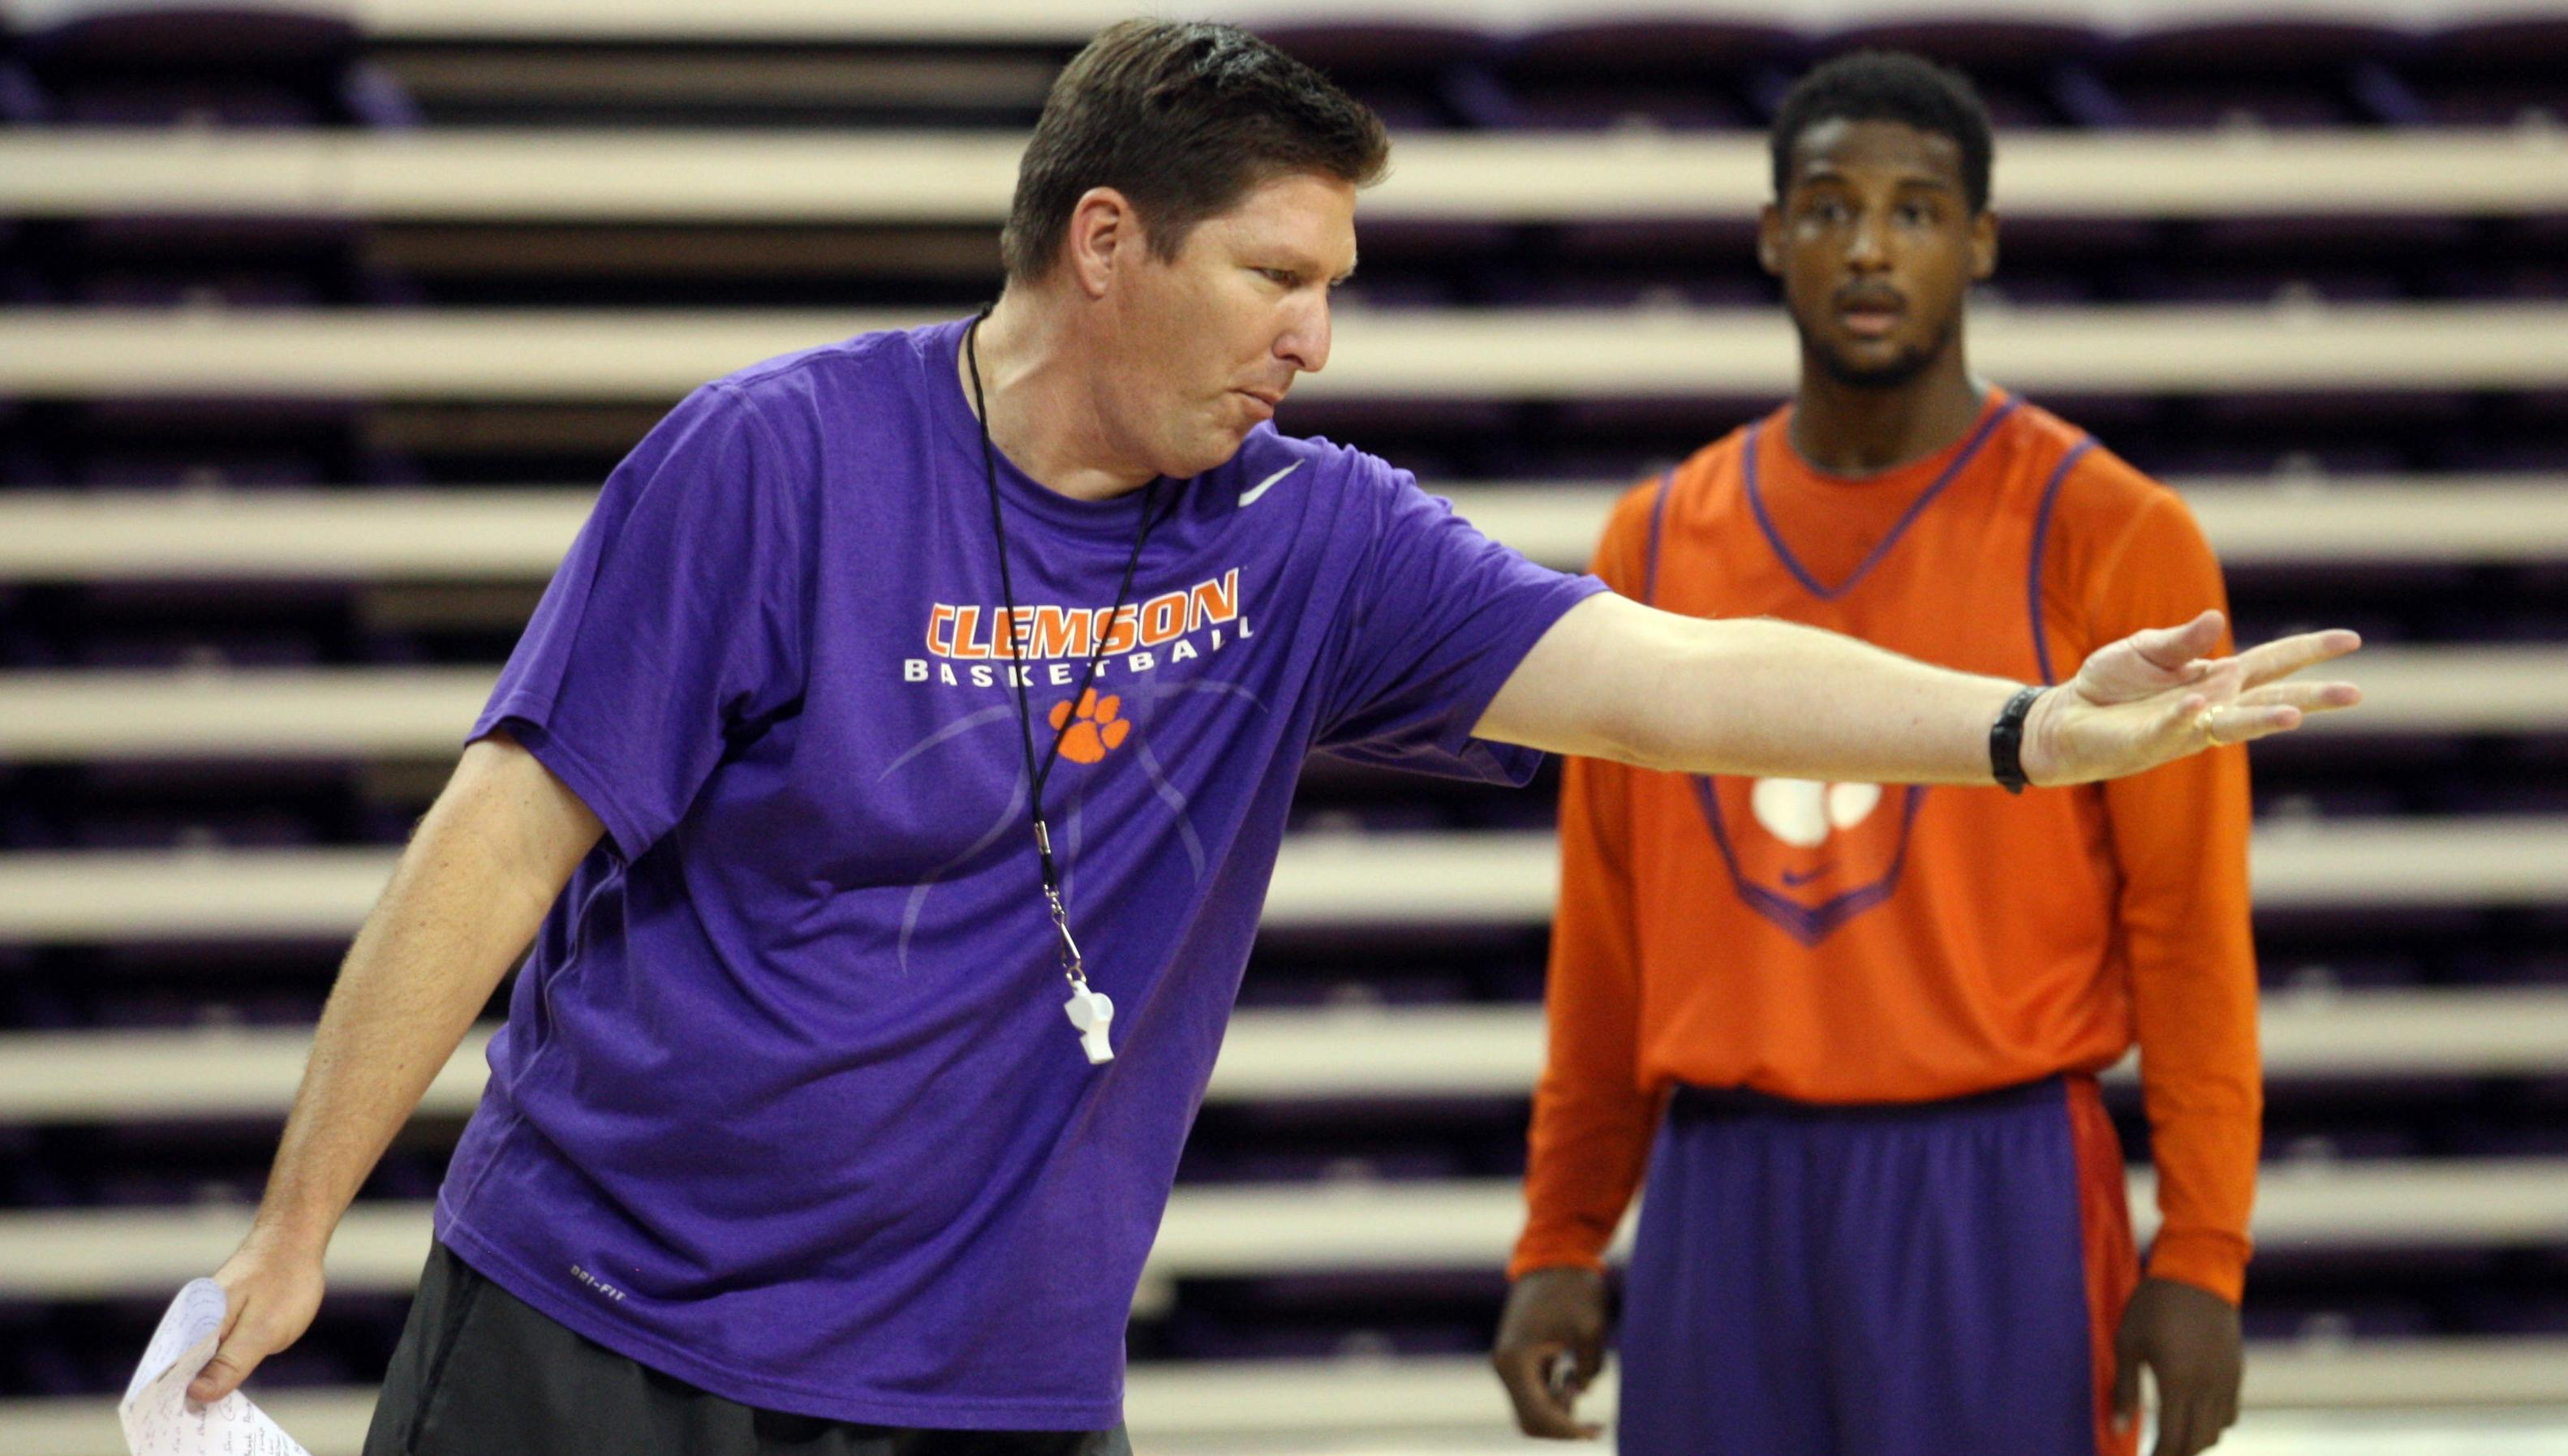 Men's Basketball Staff to Hold Coaches Clinic on October 5